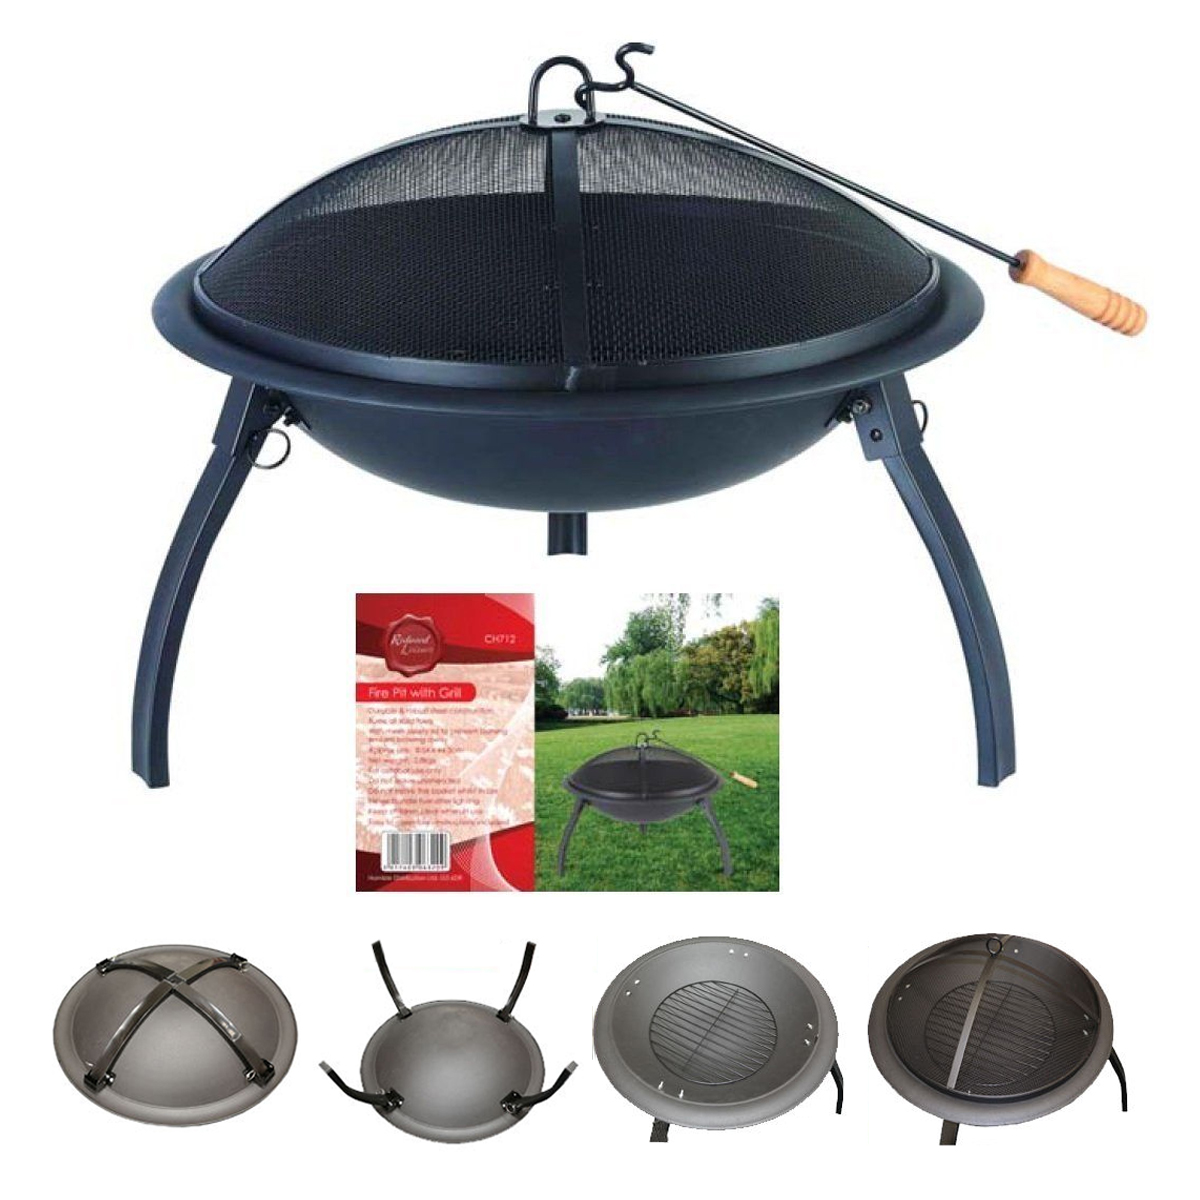 Portable Fire Pit For Camping : New portable fire pit log heater bowl folding garden